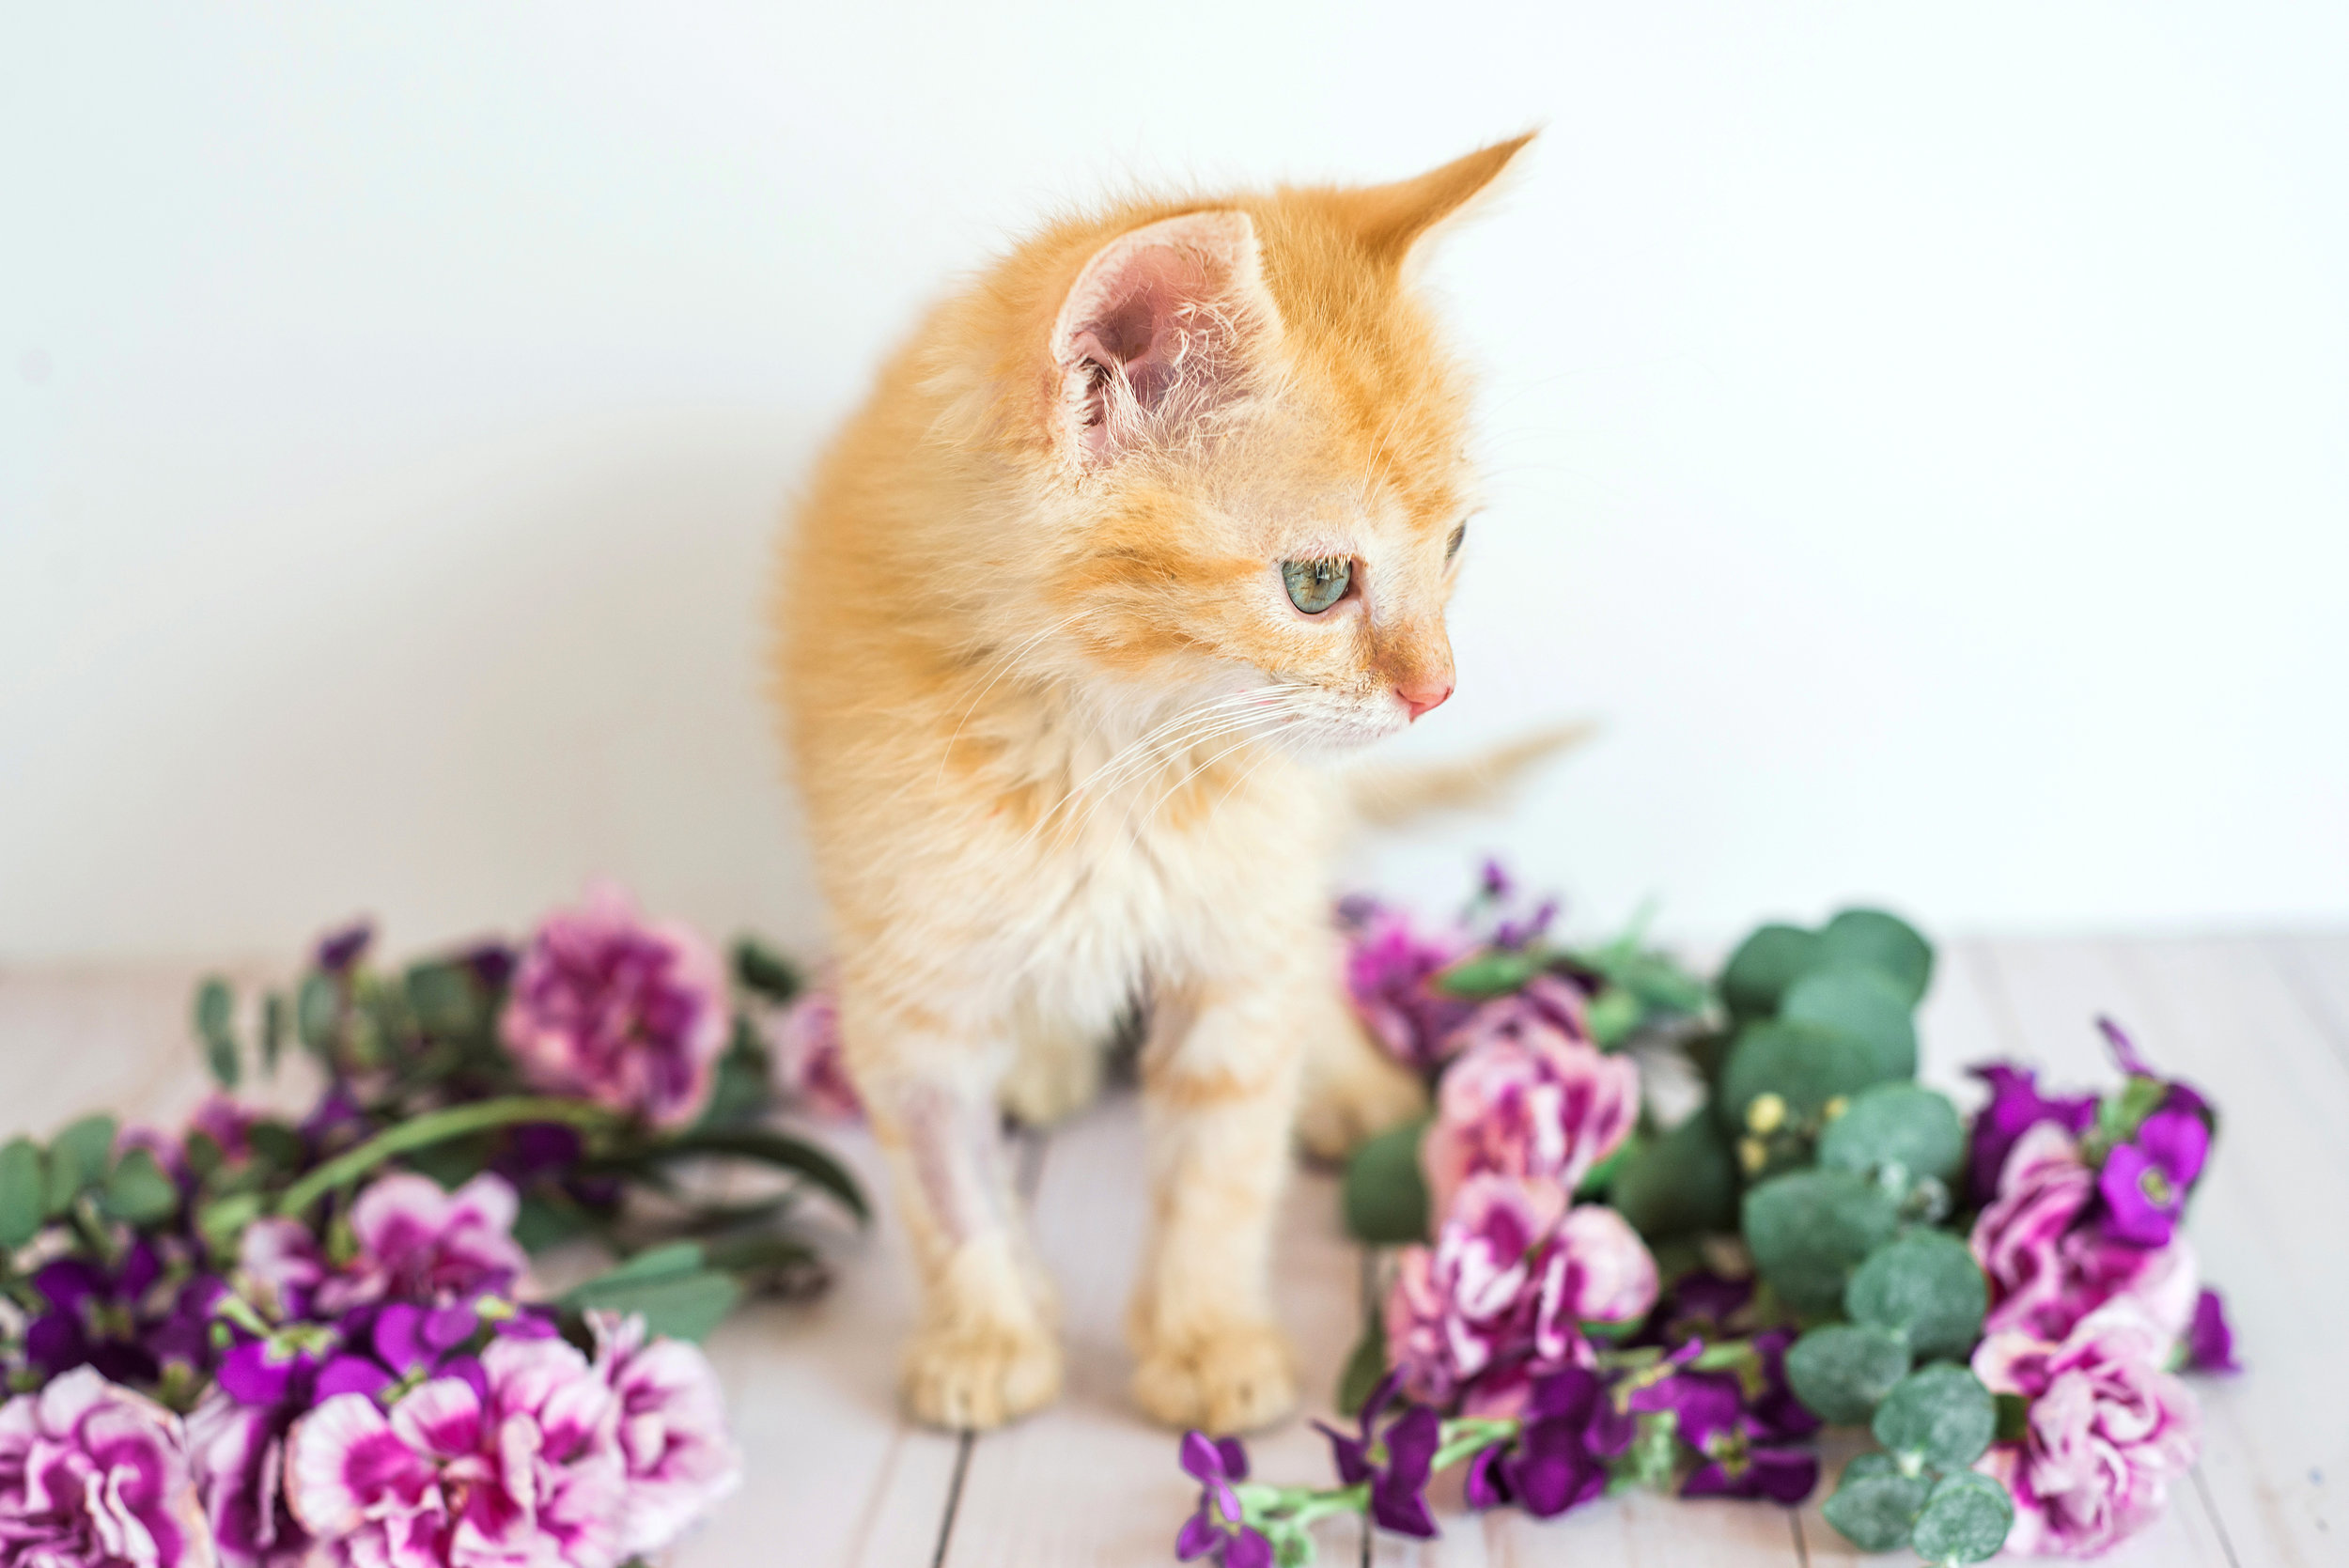 Adoptable kitten from the Asheville Humane Society. Pet photography by Sarah Hooker Photography